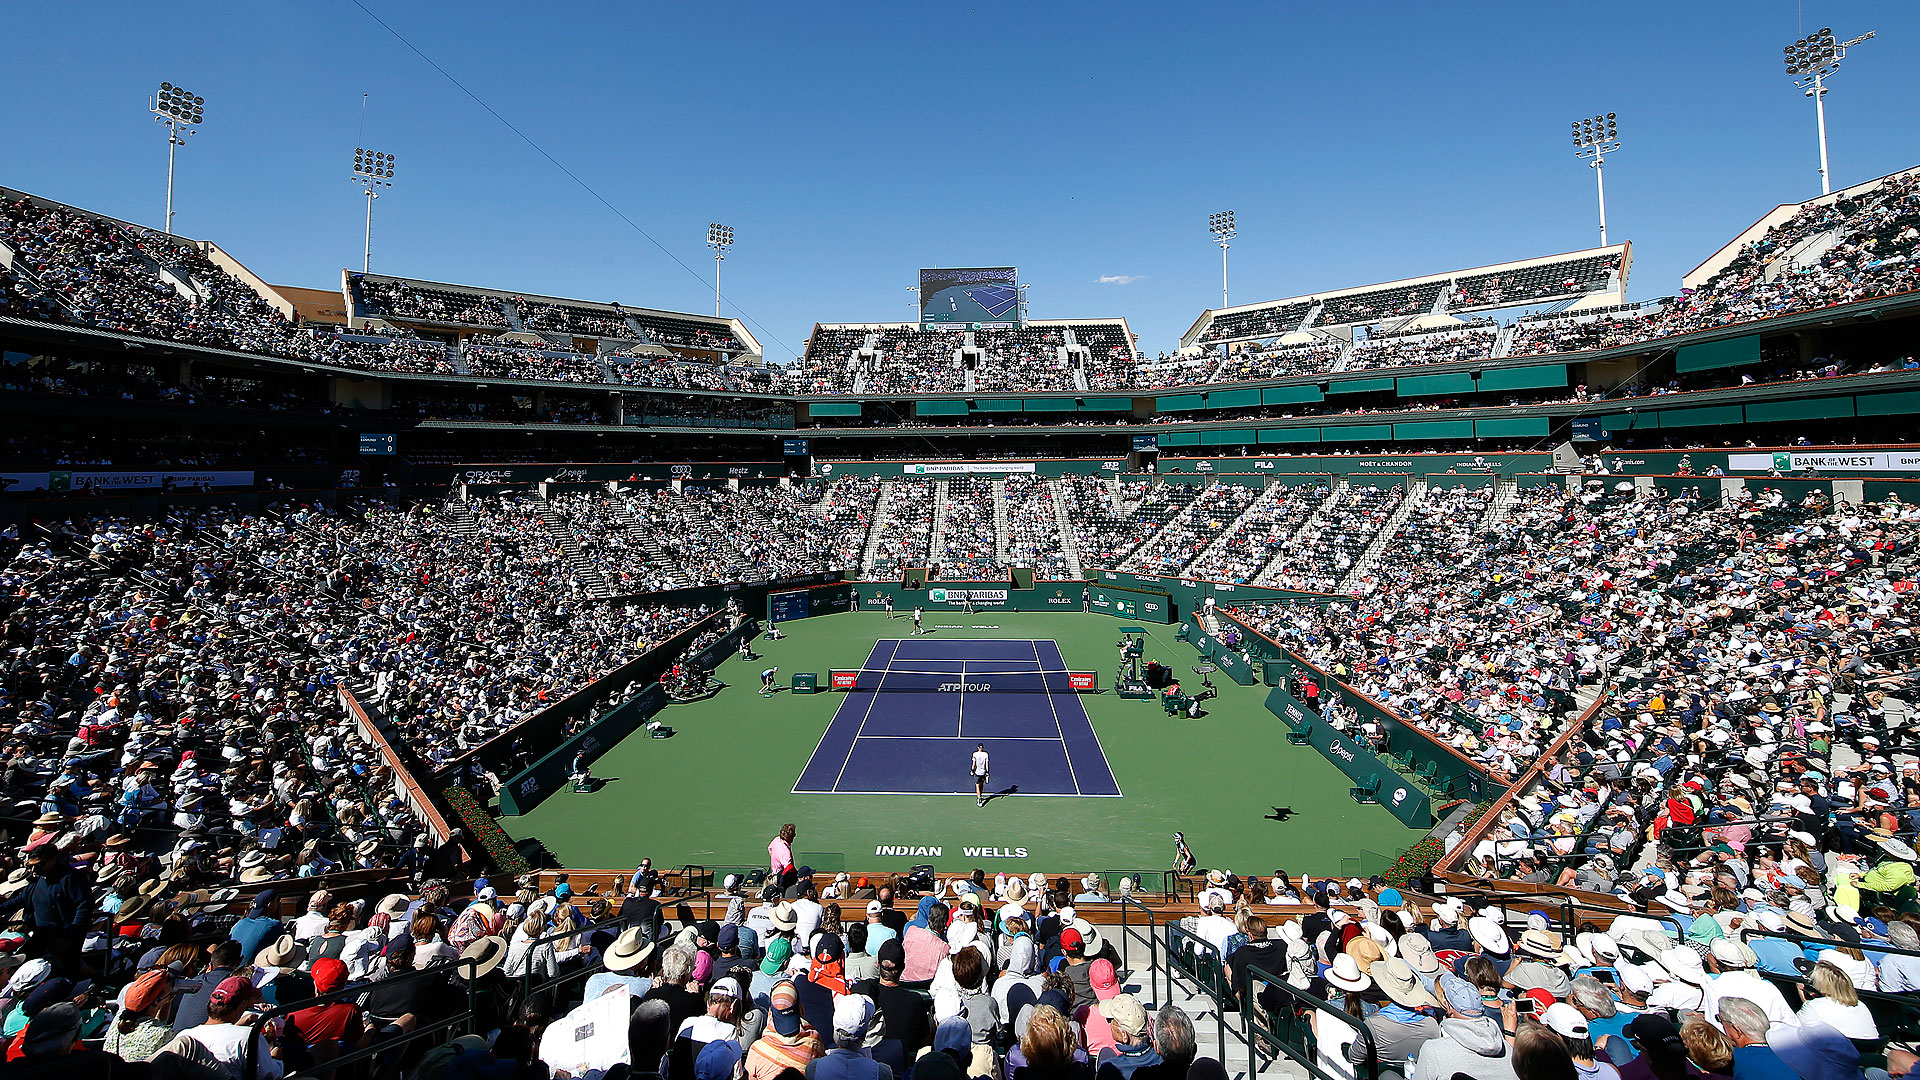 Atp Calendario 2020.Atp Announces 2020 Atp Tour Calendar Atp Tour Tennis